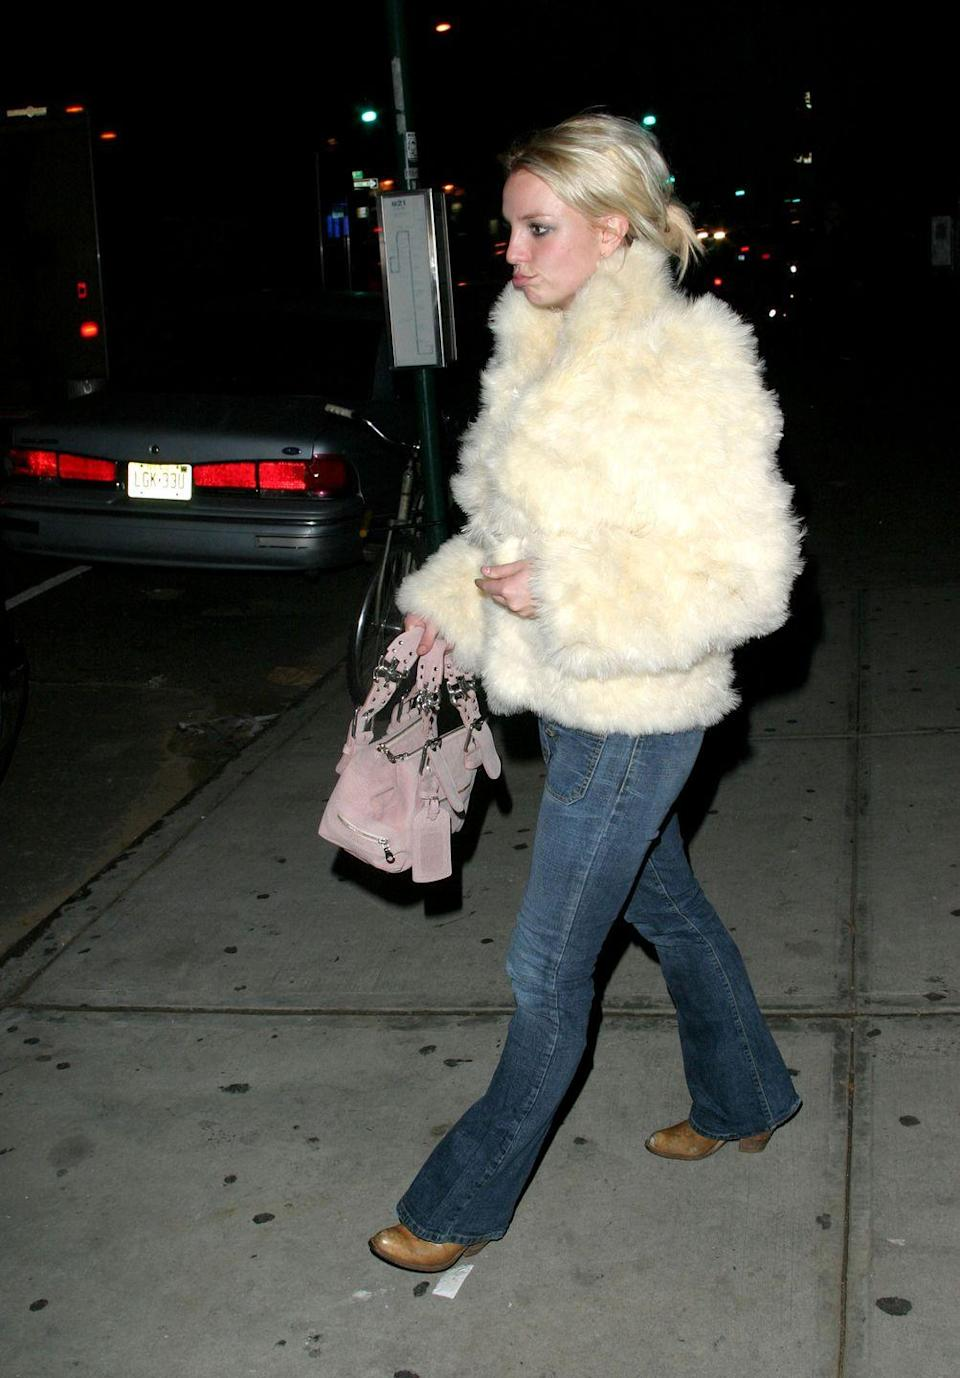 <p>Now that it's winter, this huge fuzzy coat looks so warm. The flared jeans and ankle boots totally complete this cold-weather ensemble.</p>